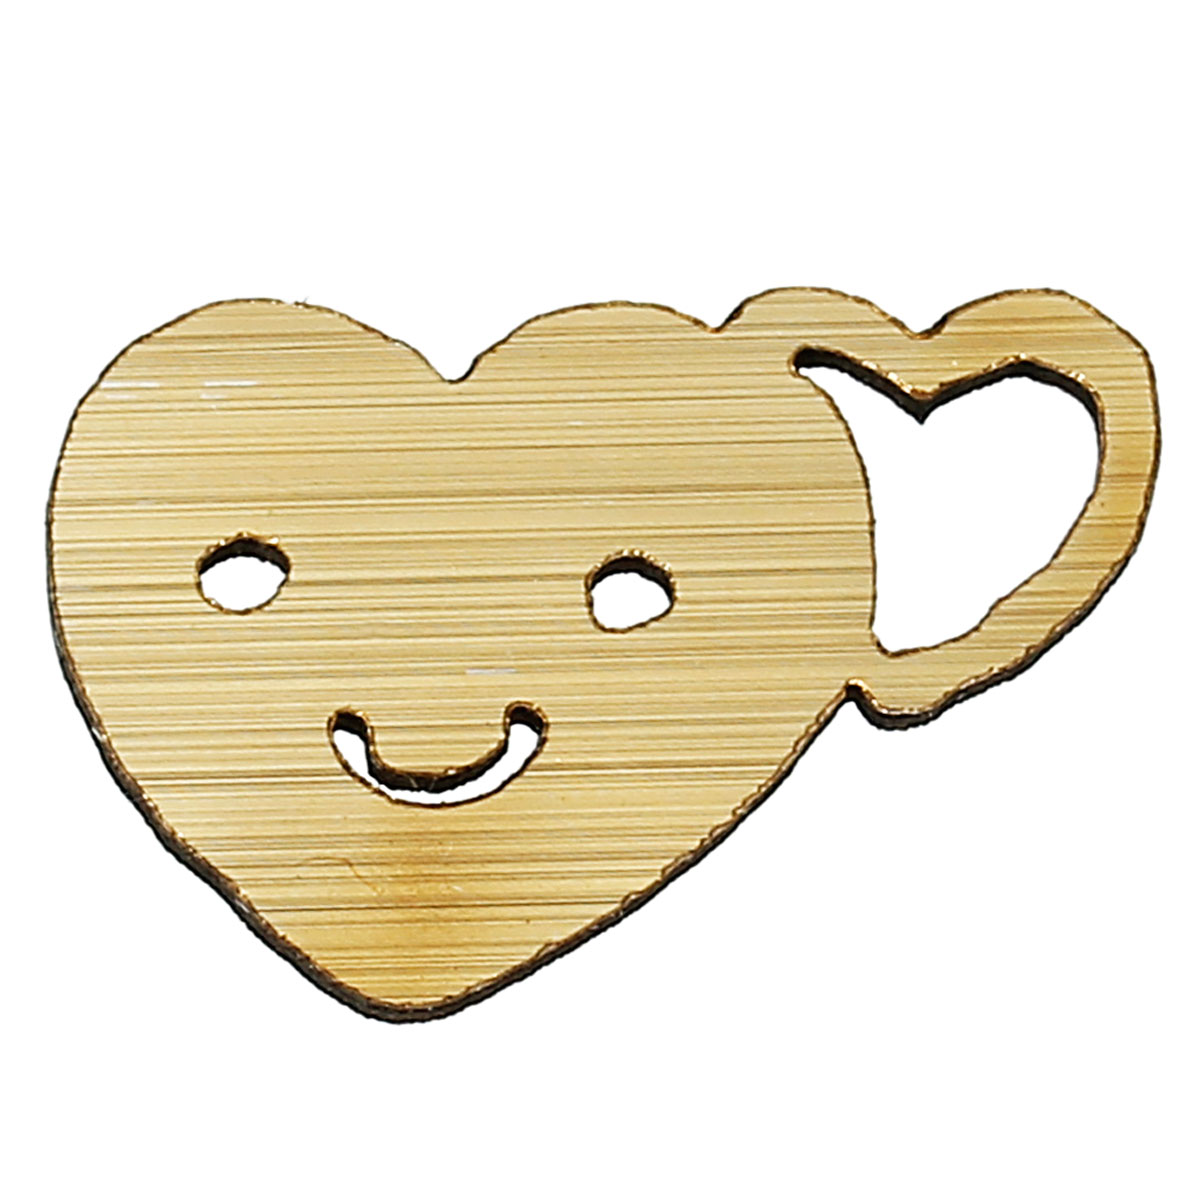 DoreenBeads Wood Cabochons Scrapbooking Embellishments Findings Heart Golden Smile Hollow 25mm(1)x 16mm(5/8),50 PCs 2015 new